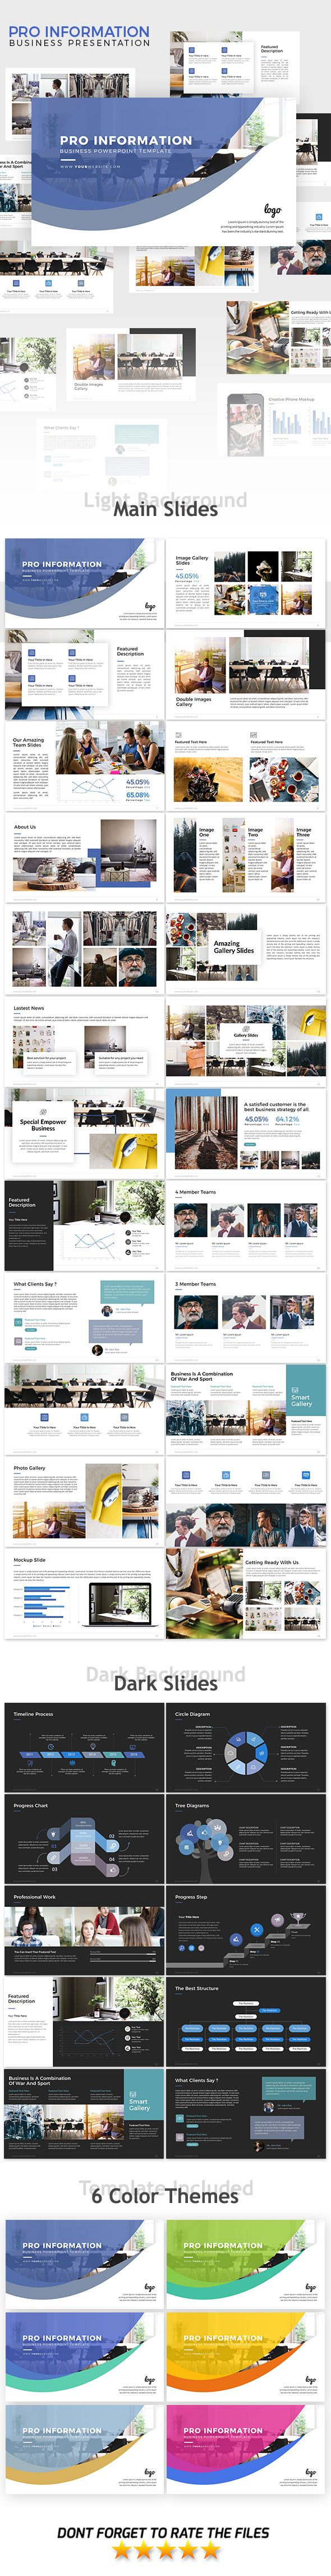 Pro information business powerpoint templates template and info pro information business powerpoint templates alramifo Choice Image